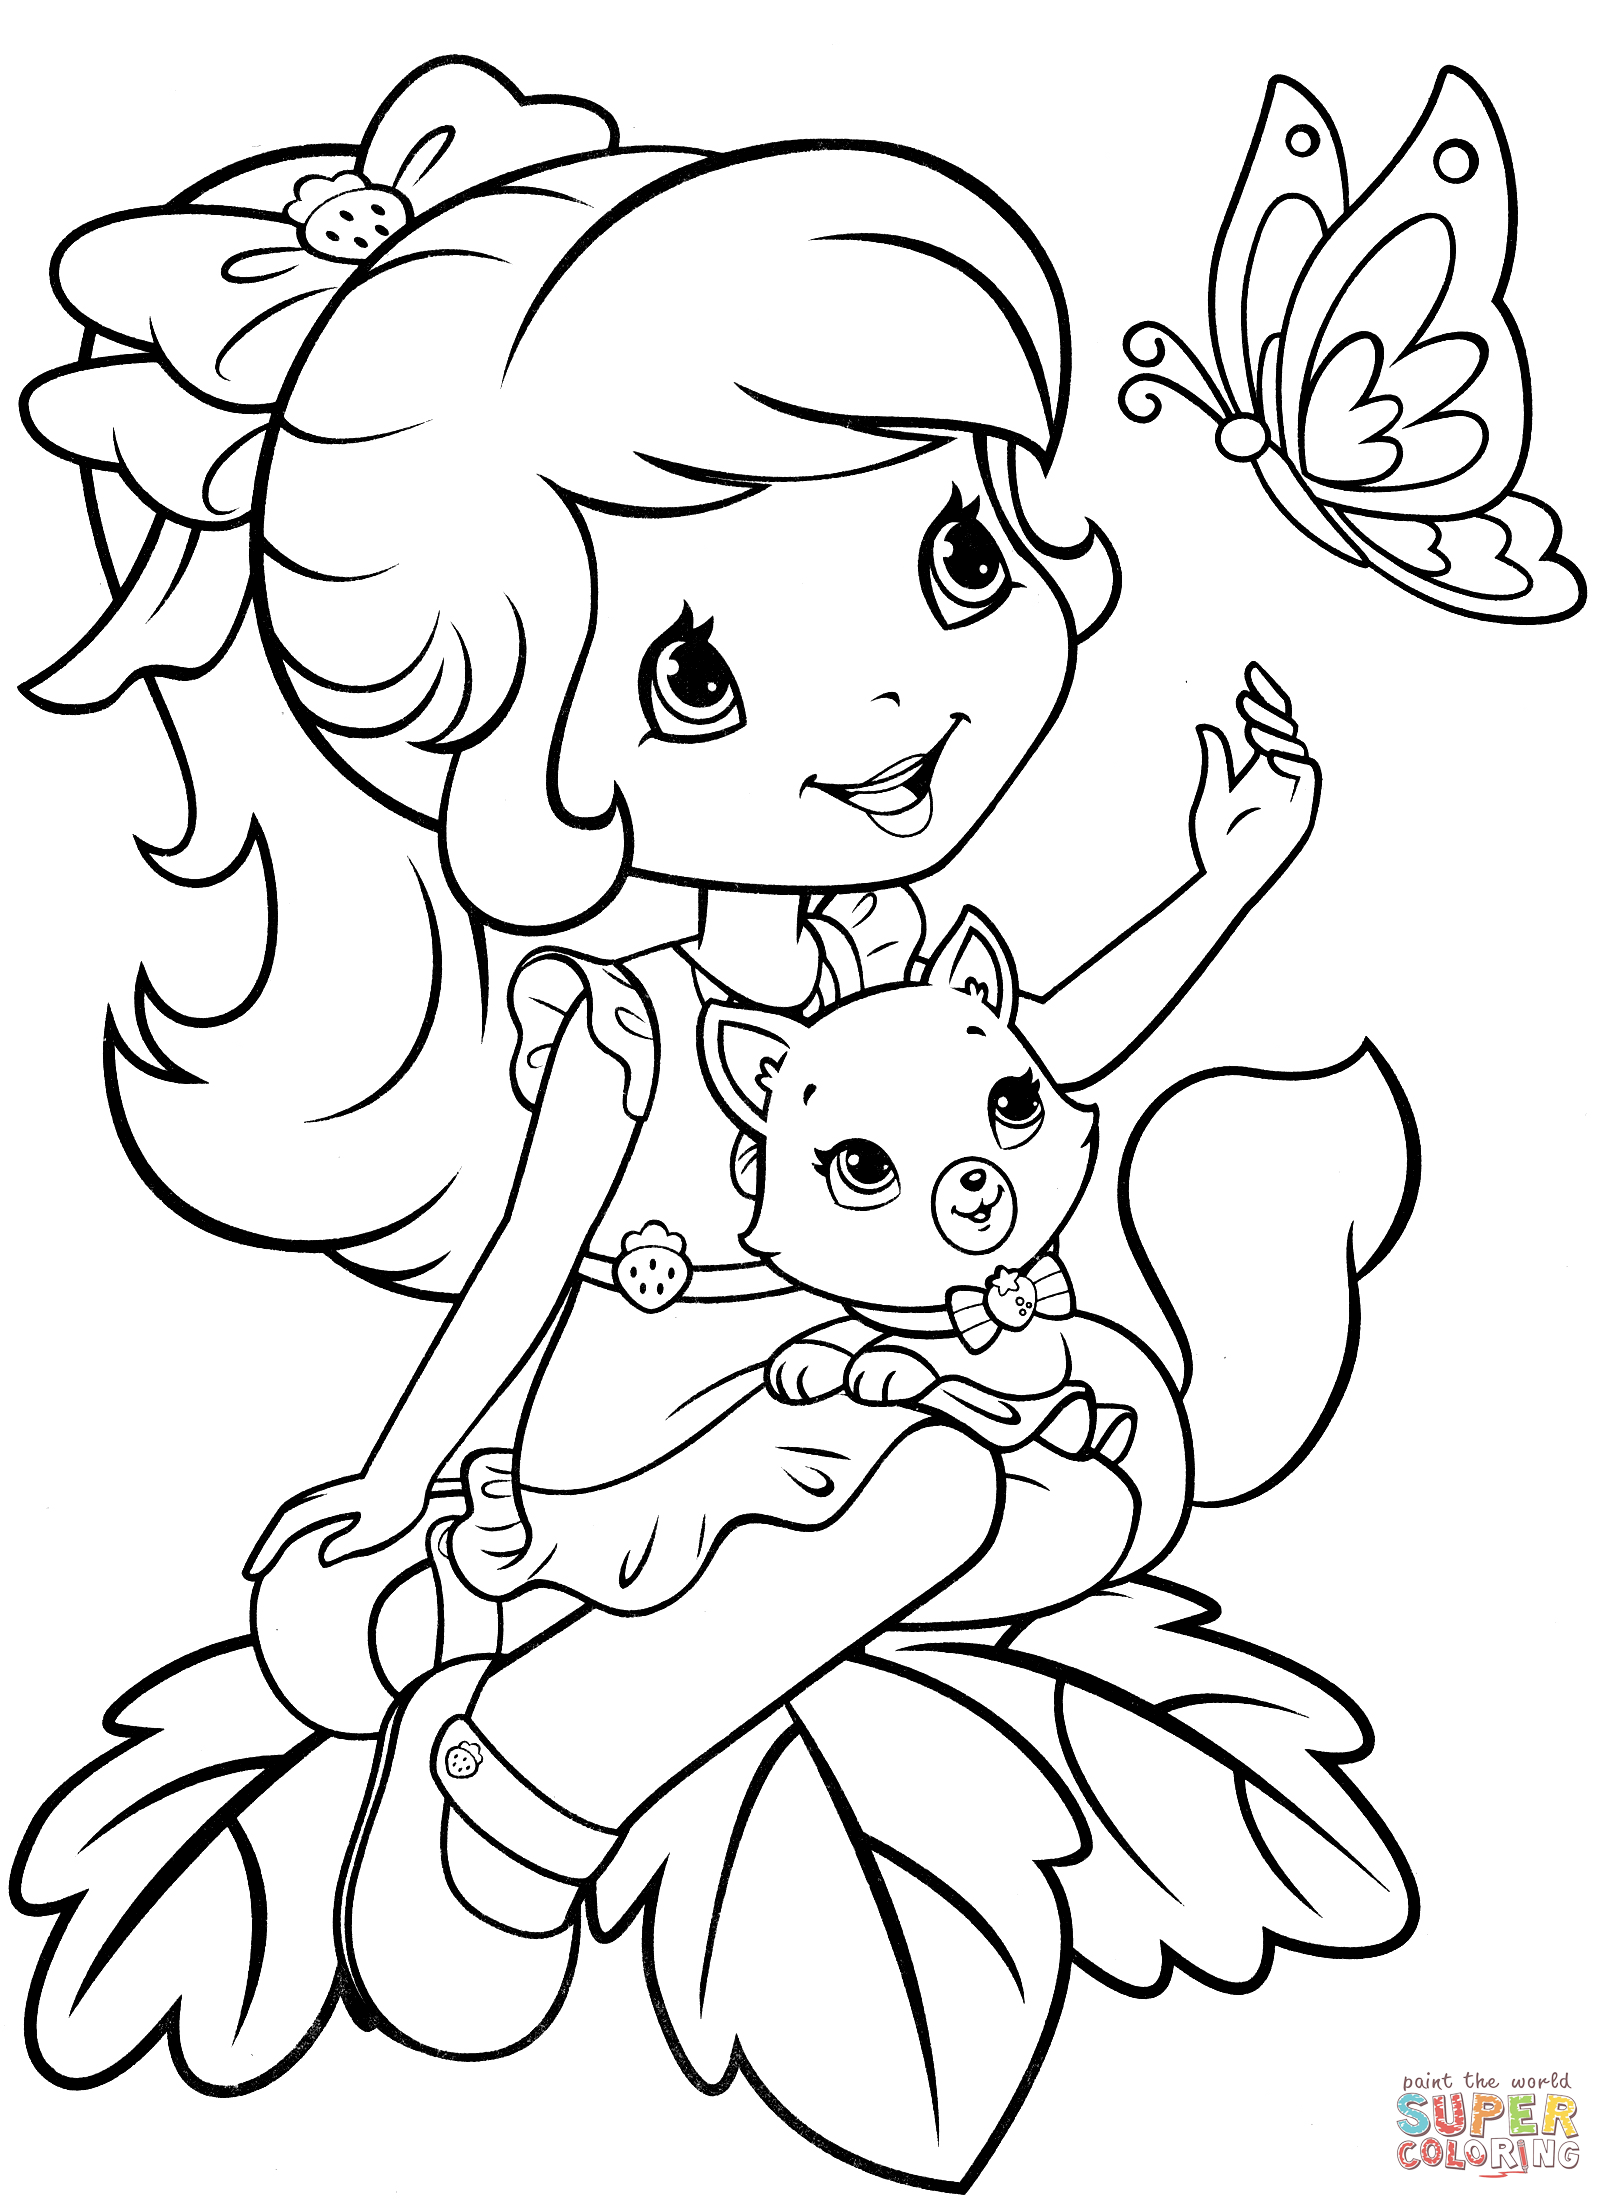 strawberry shortcake coloring games strawberry shortcake coloring page strawberry shortcake games shortcake coloring strawberry